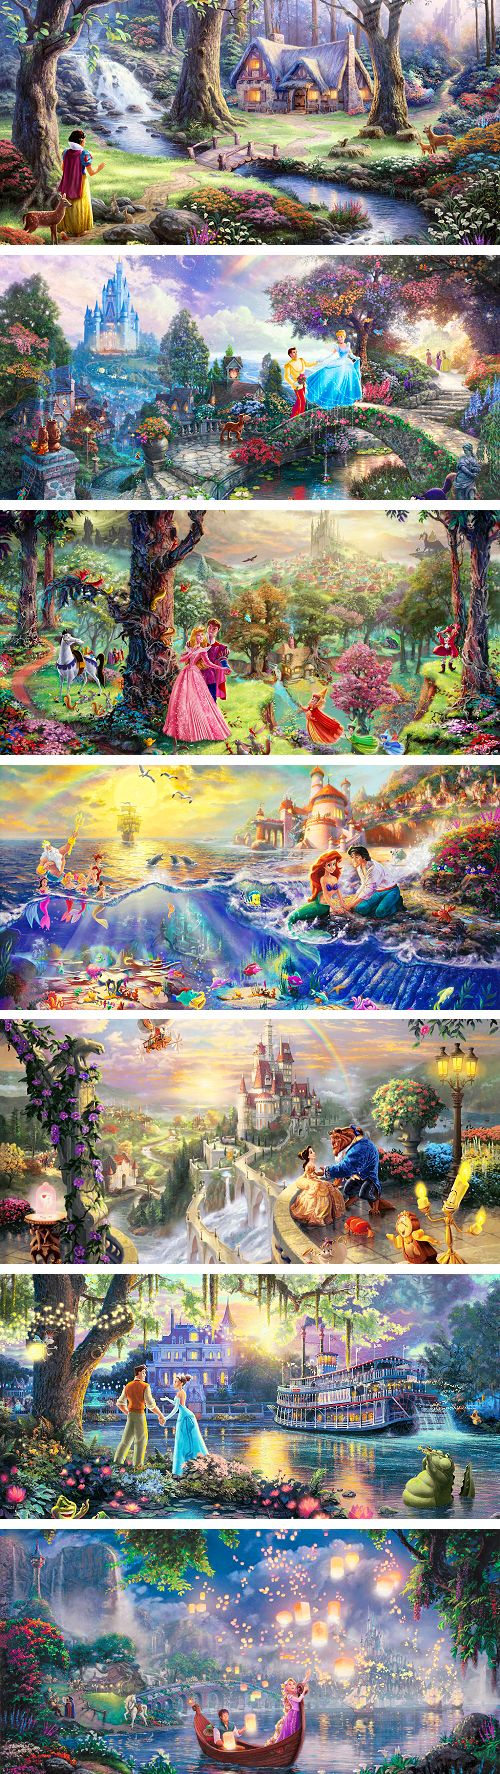 Thomas Kinkade Disney pictures!